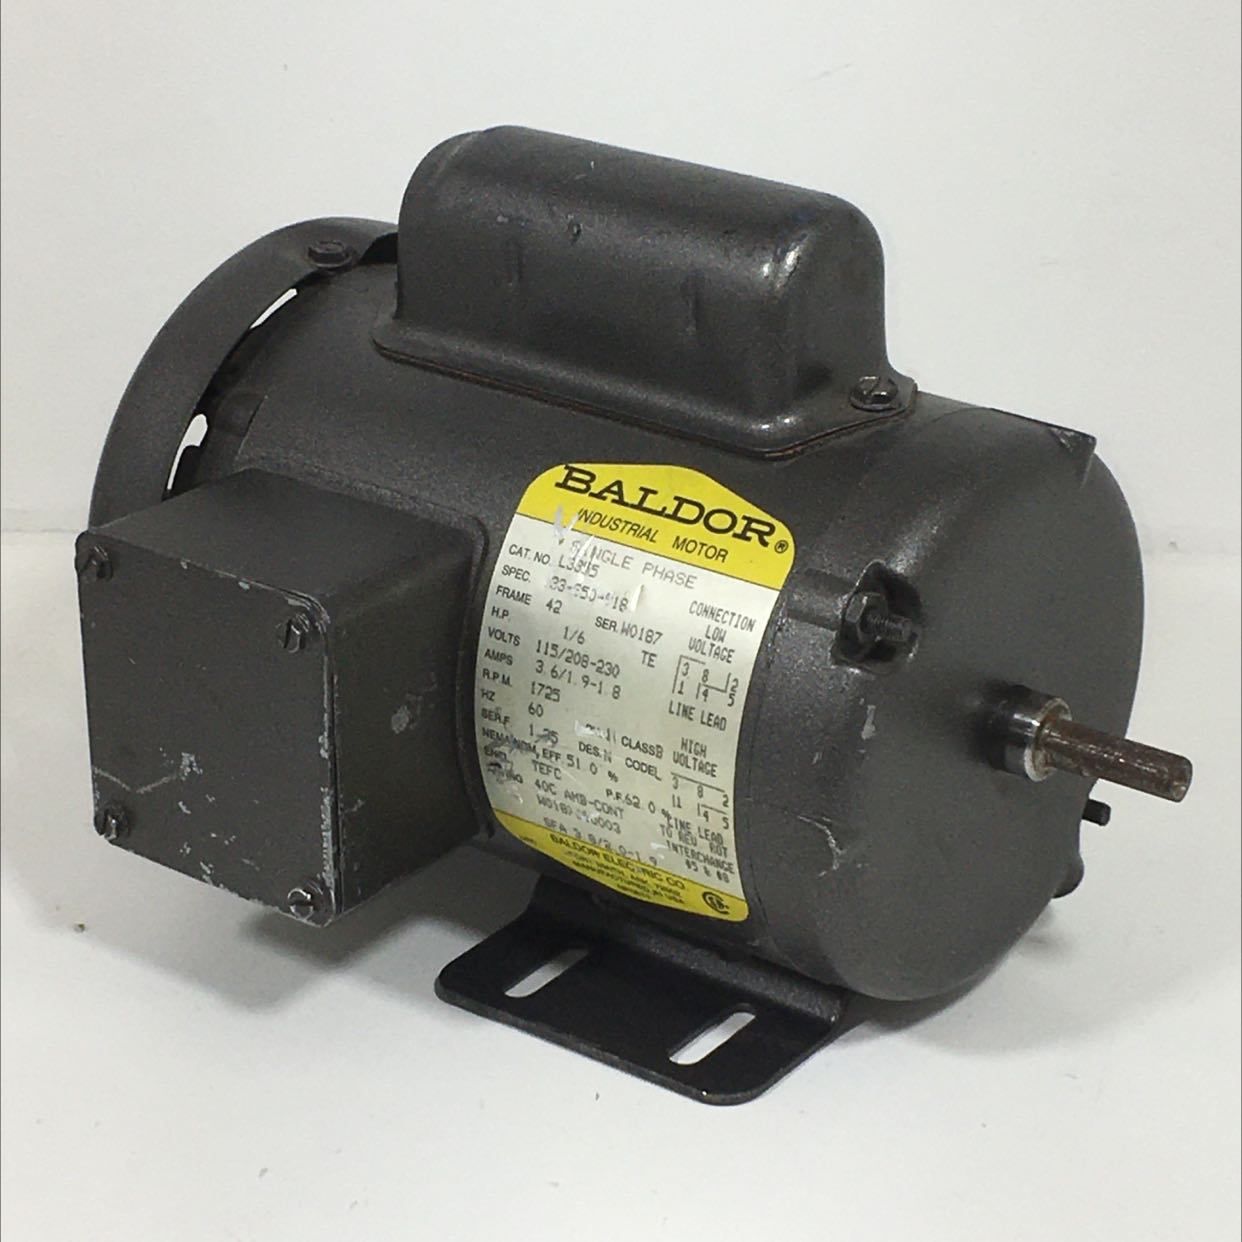 Baldor Electric Co. L3355 Industrial Motor Single Phase